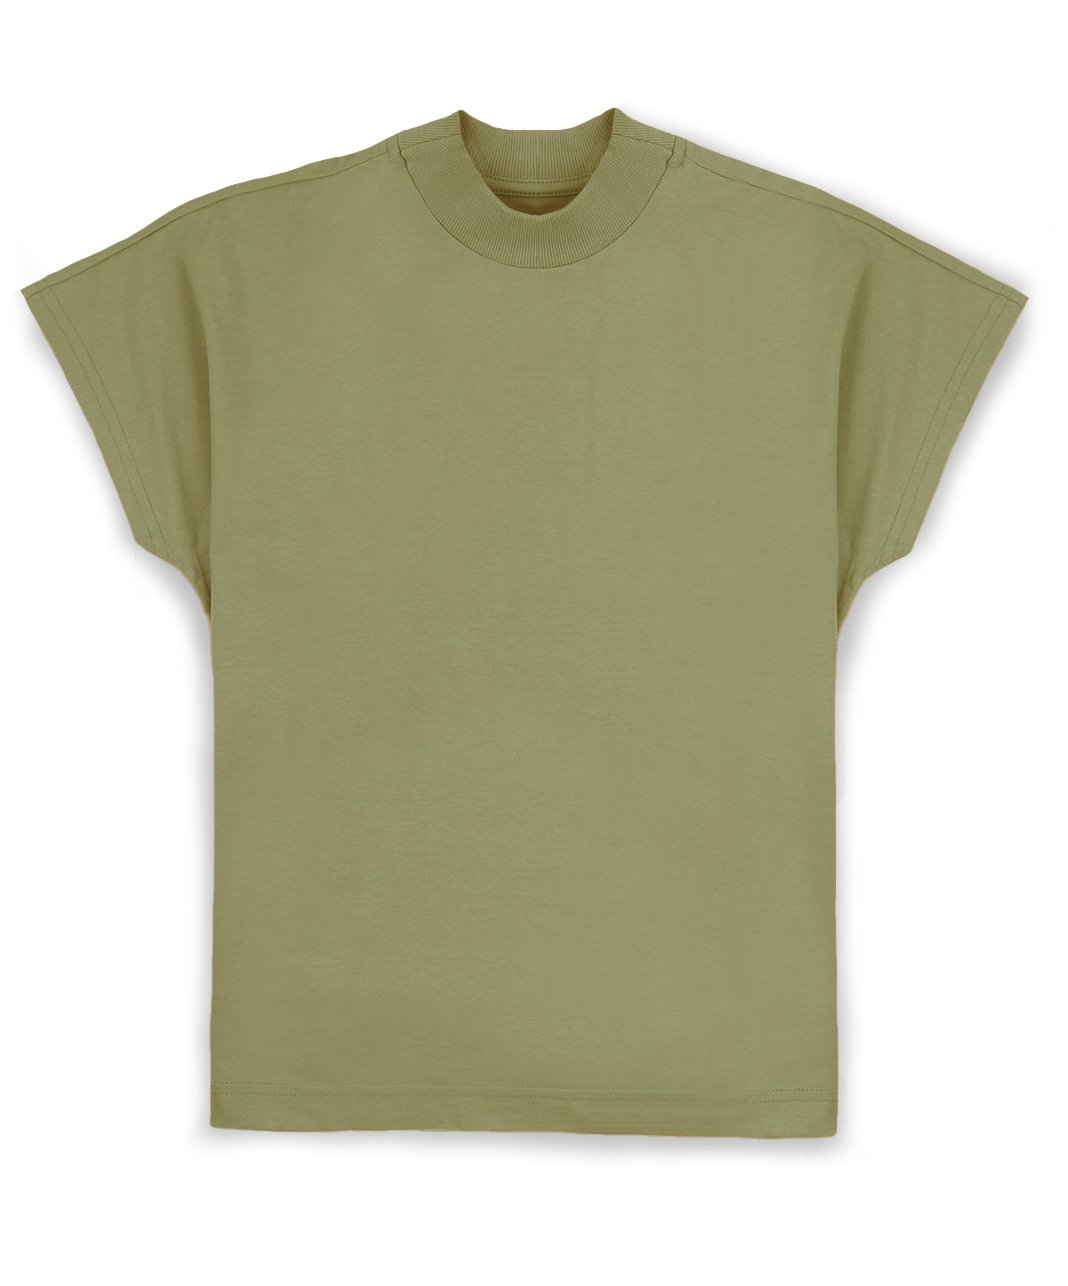 Foto do produto Camiseta Gola Alta Tingimento Natural Verde Avocado